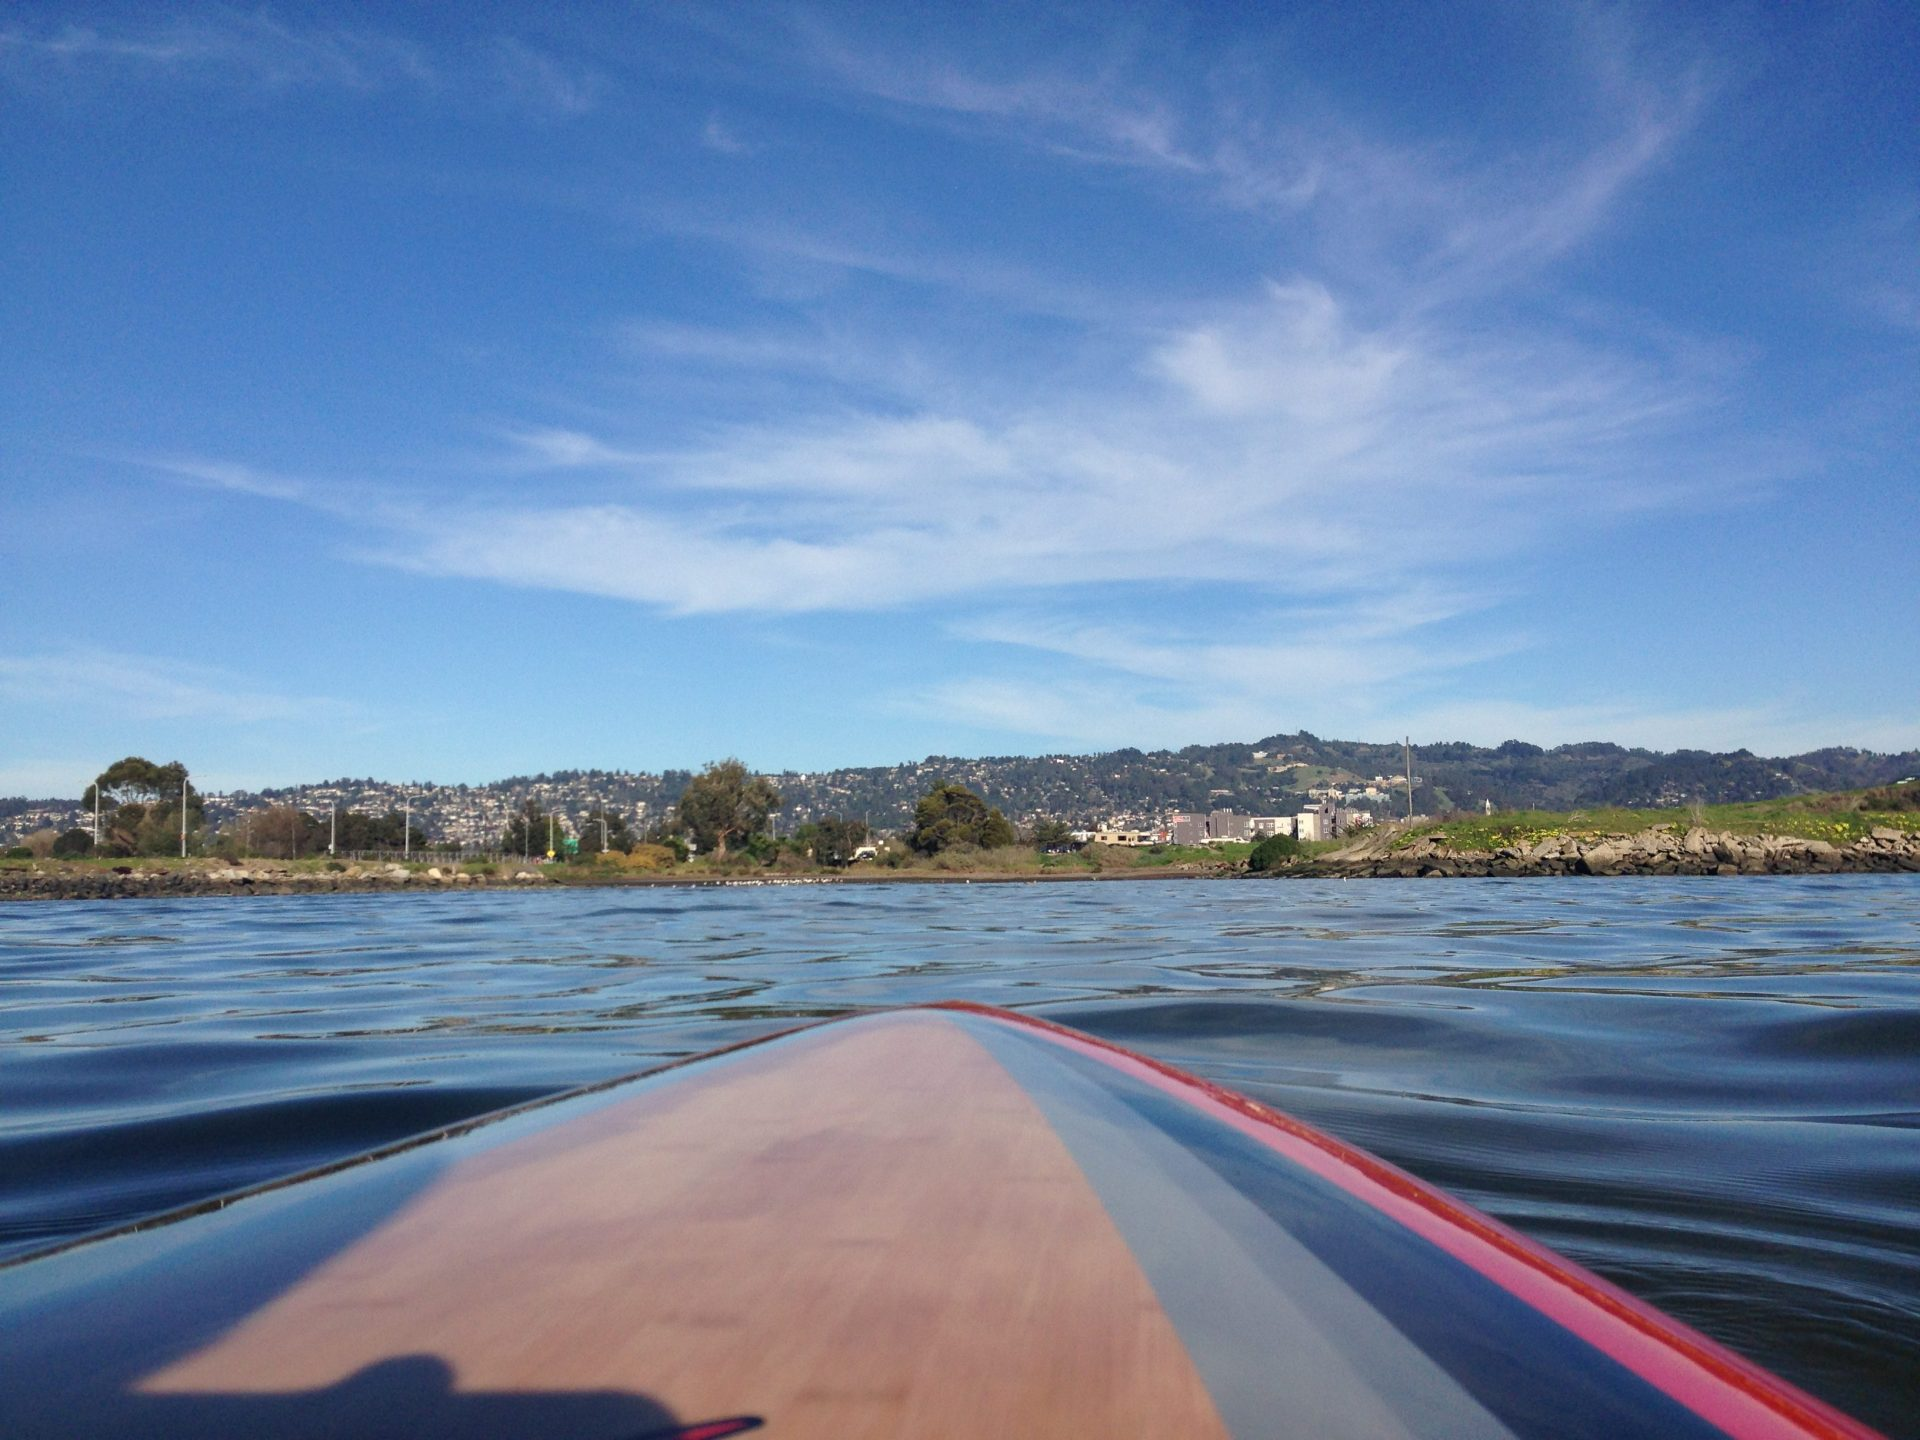 View from paddleboard on water, toward shore and East Bay Hills